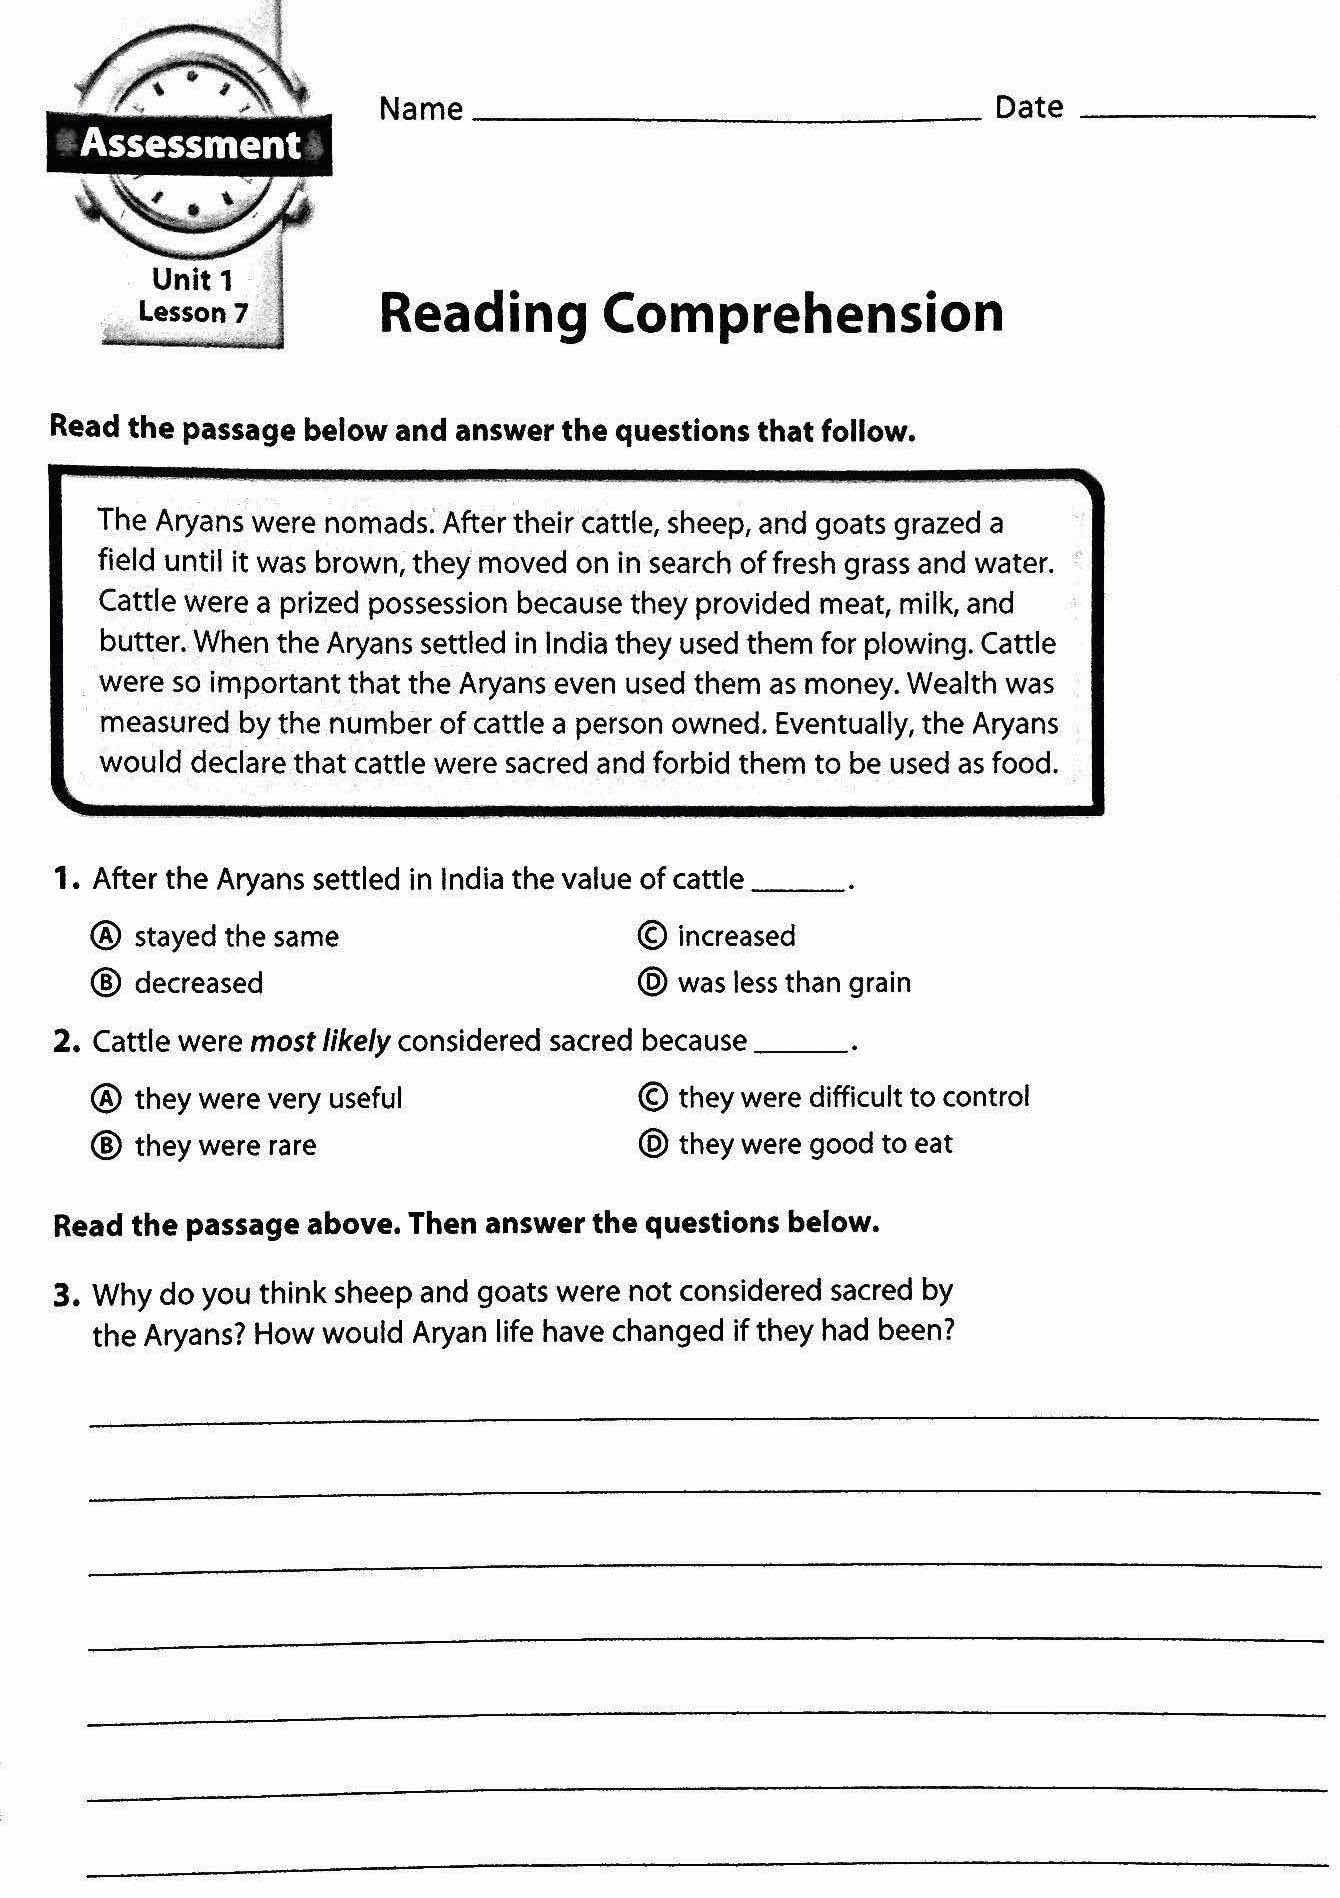 Reading Comprehension Worksheets Grade 2 Template Library